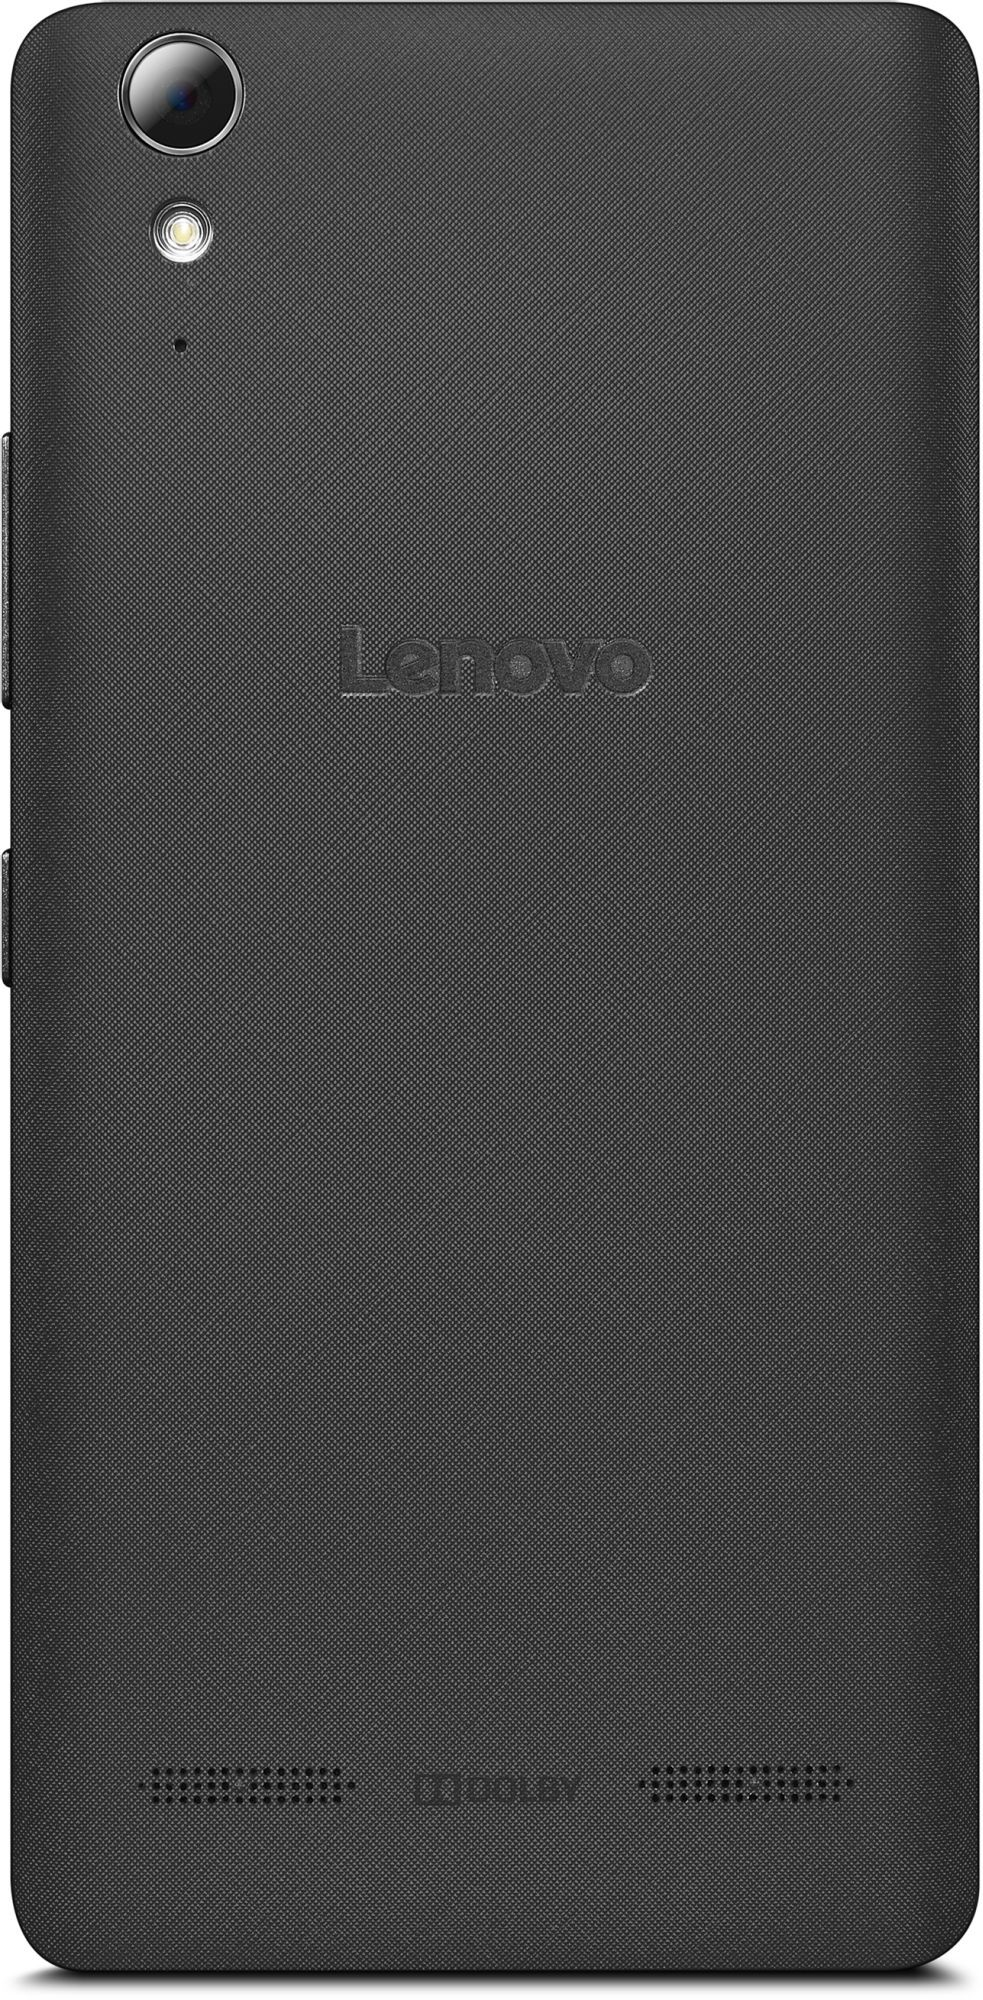 Lenovo a6010 Plus 16Gb LTE